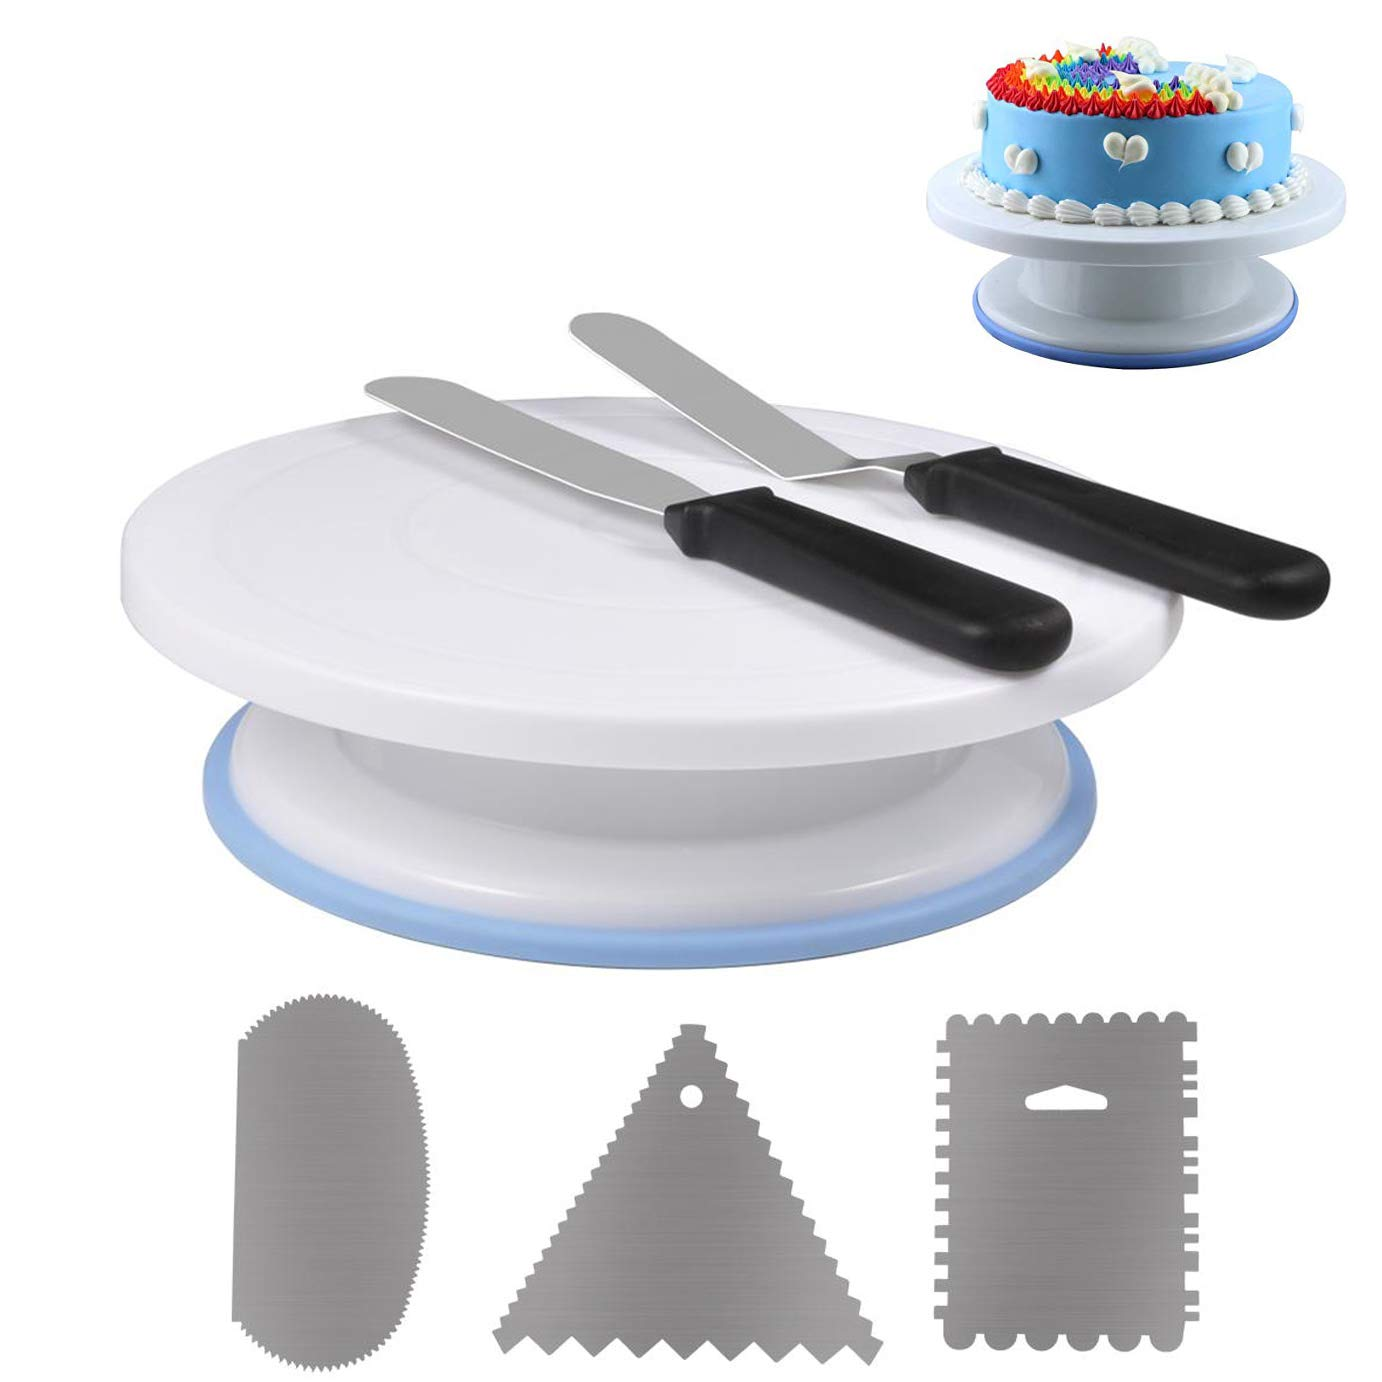 11 Inch Rotating Cake Turntable with 3Pcs Birthday Cake Scraper Icing Smoother, Straight & Off Set Spatula for Beginner, Revolving Cake Stand Cake Supplies for Cake Decorations/Pastries/Cupcakes by RAINBEAN